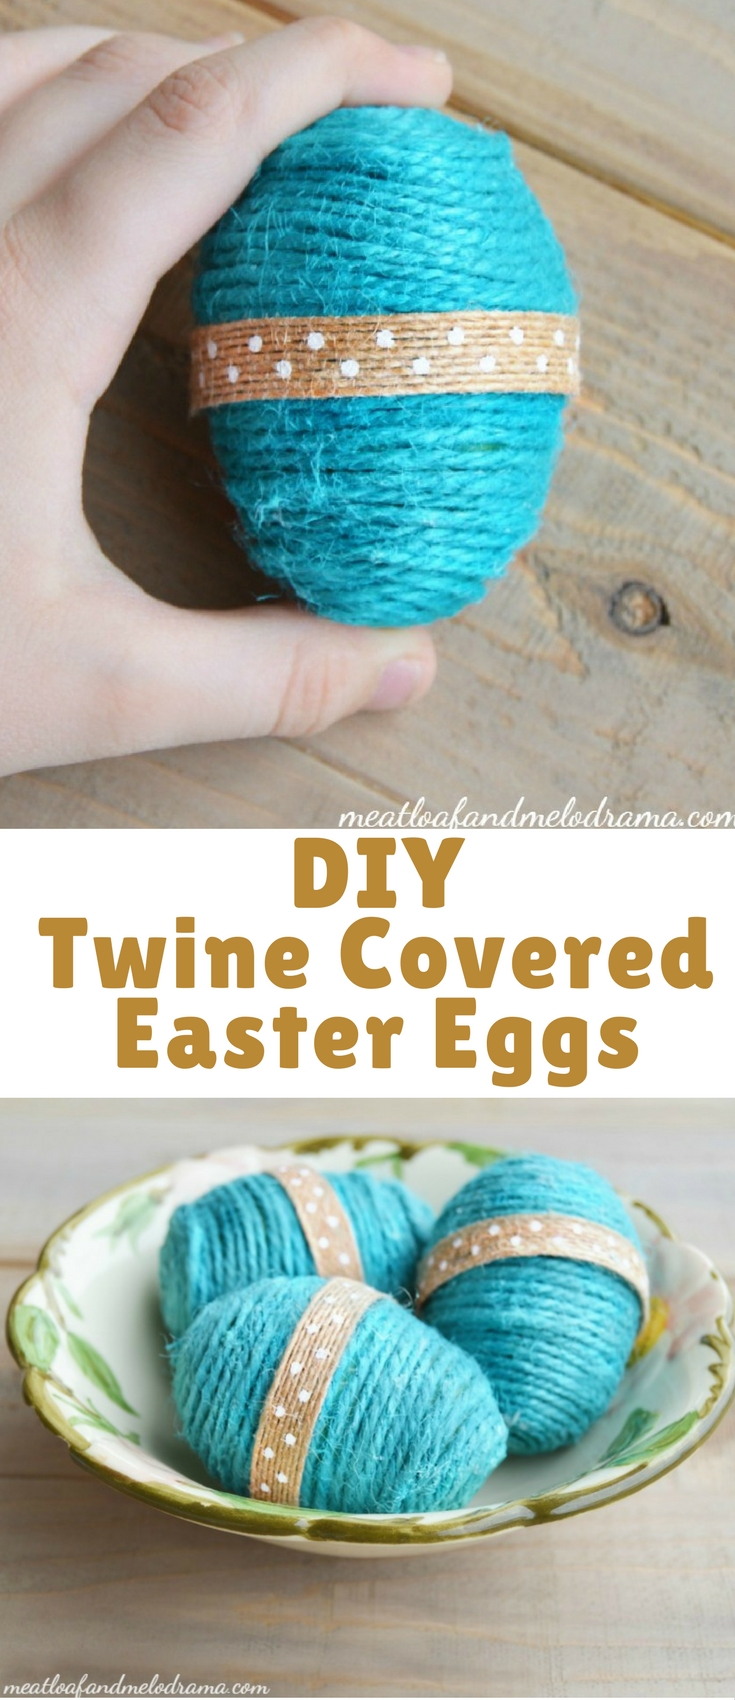 Diy twine covered Easter eggs are easy to make and add a fun rustic touch to your Easter and Spring decor. Grab some cheap plastic eggs from the Dollar Store or reuse old eggs that you already have, and you're good to go!